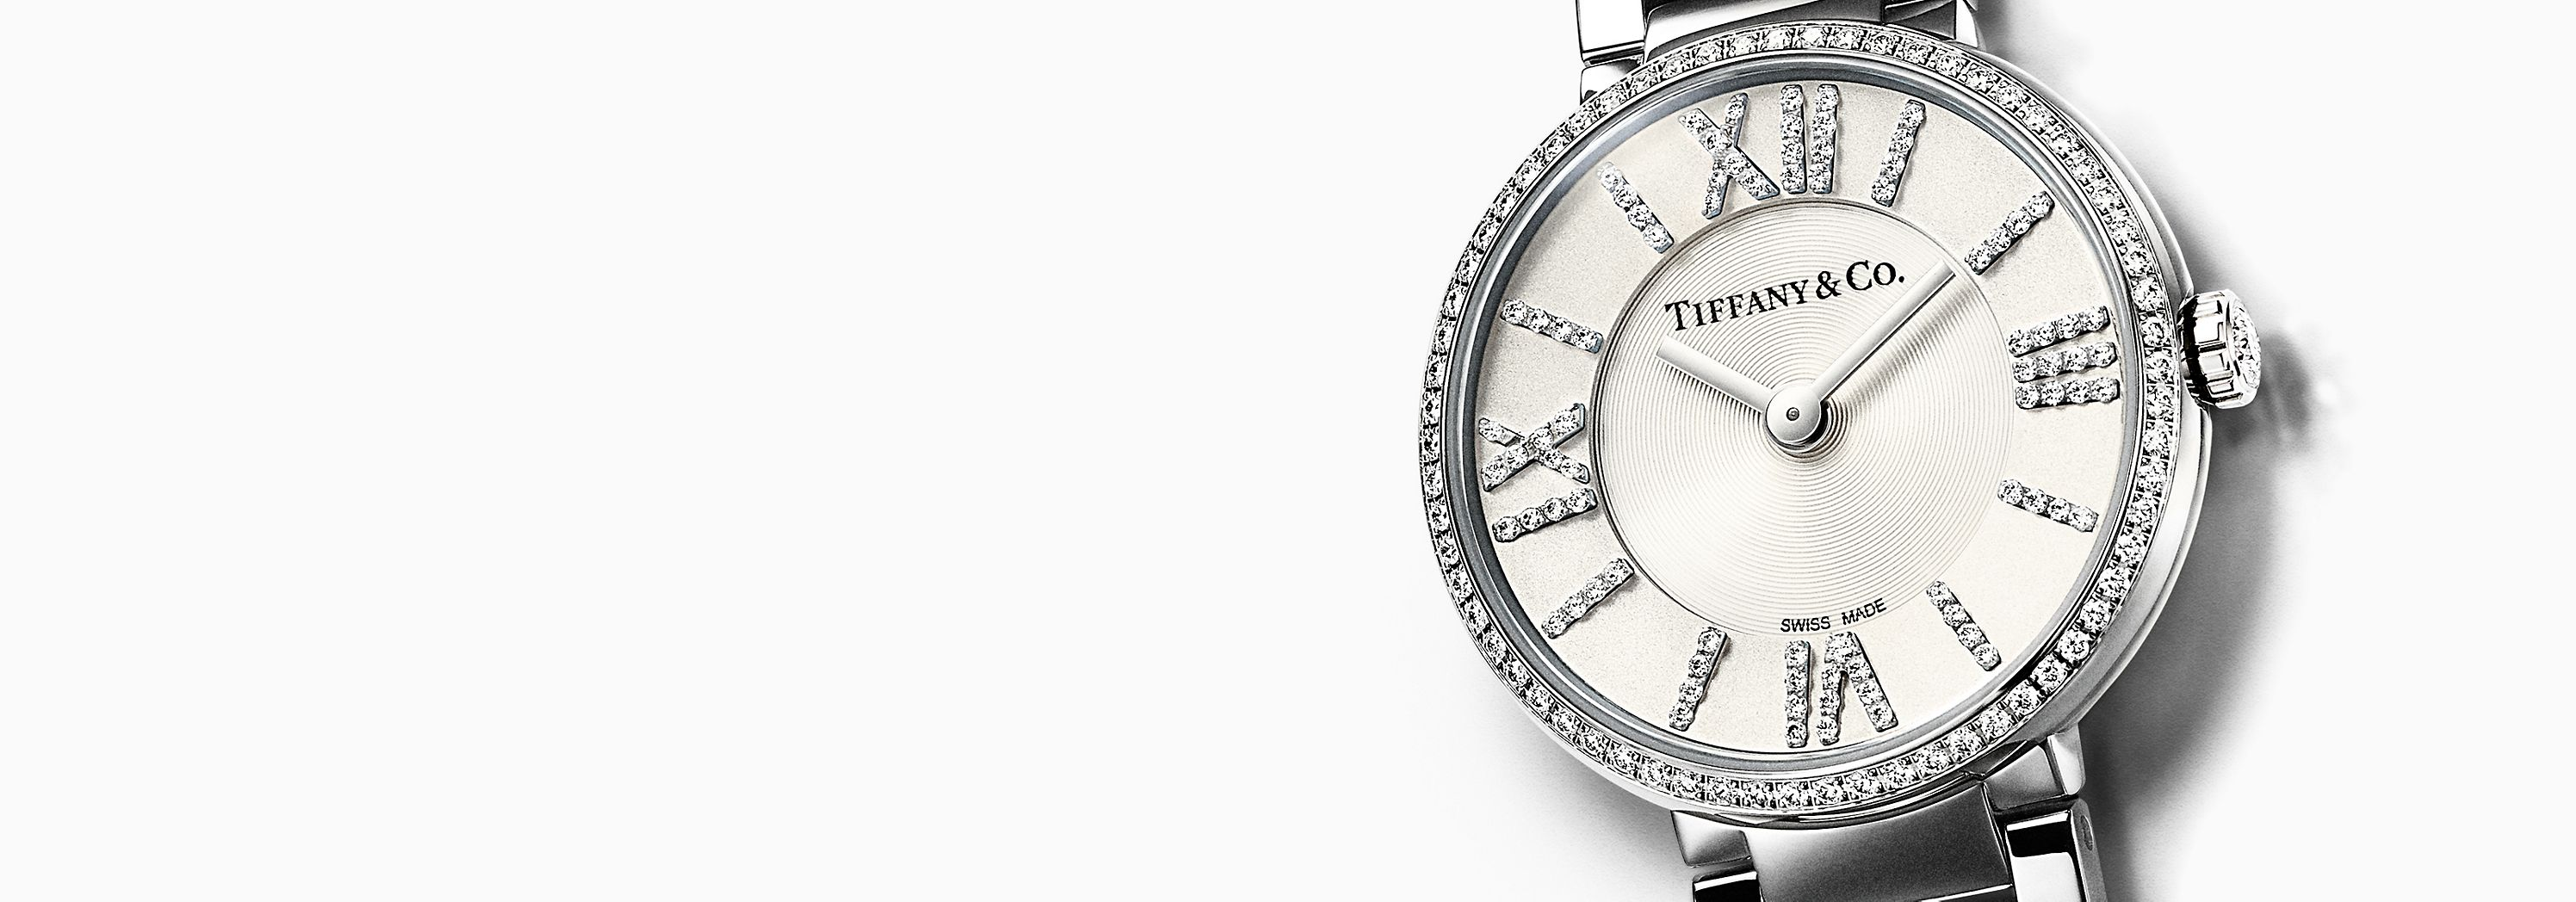 Ver relojes Atlas® de Tiffany & Co.